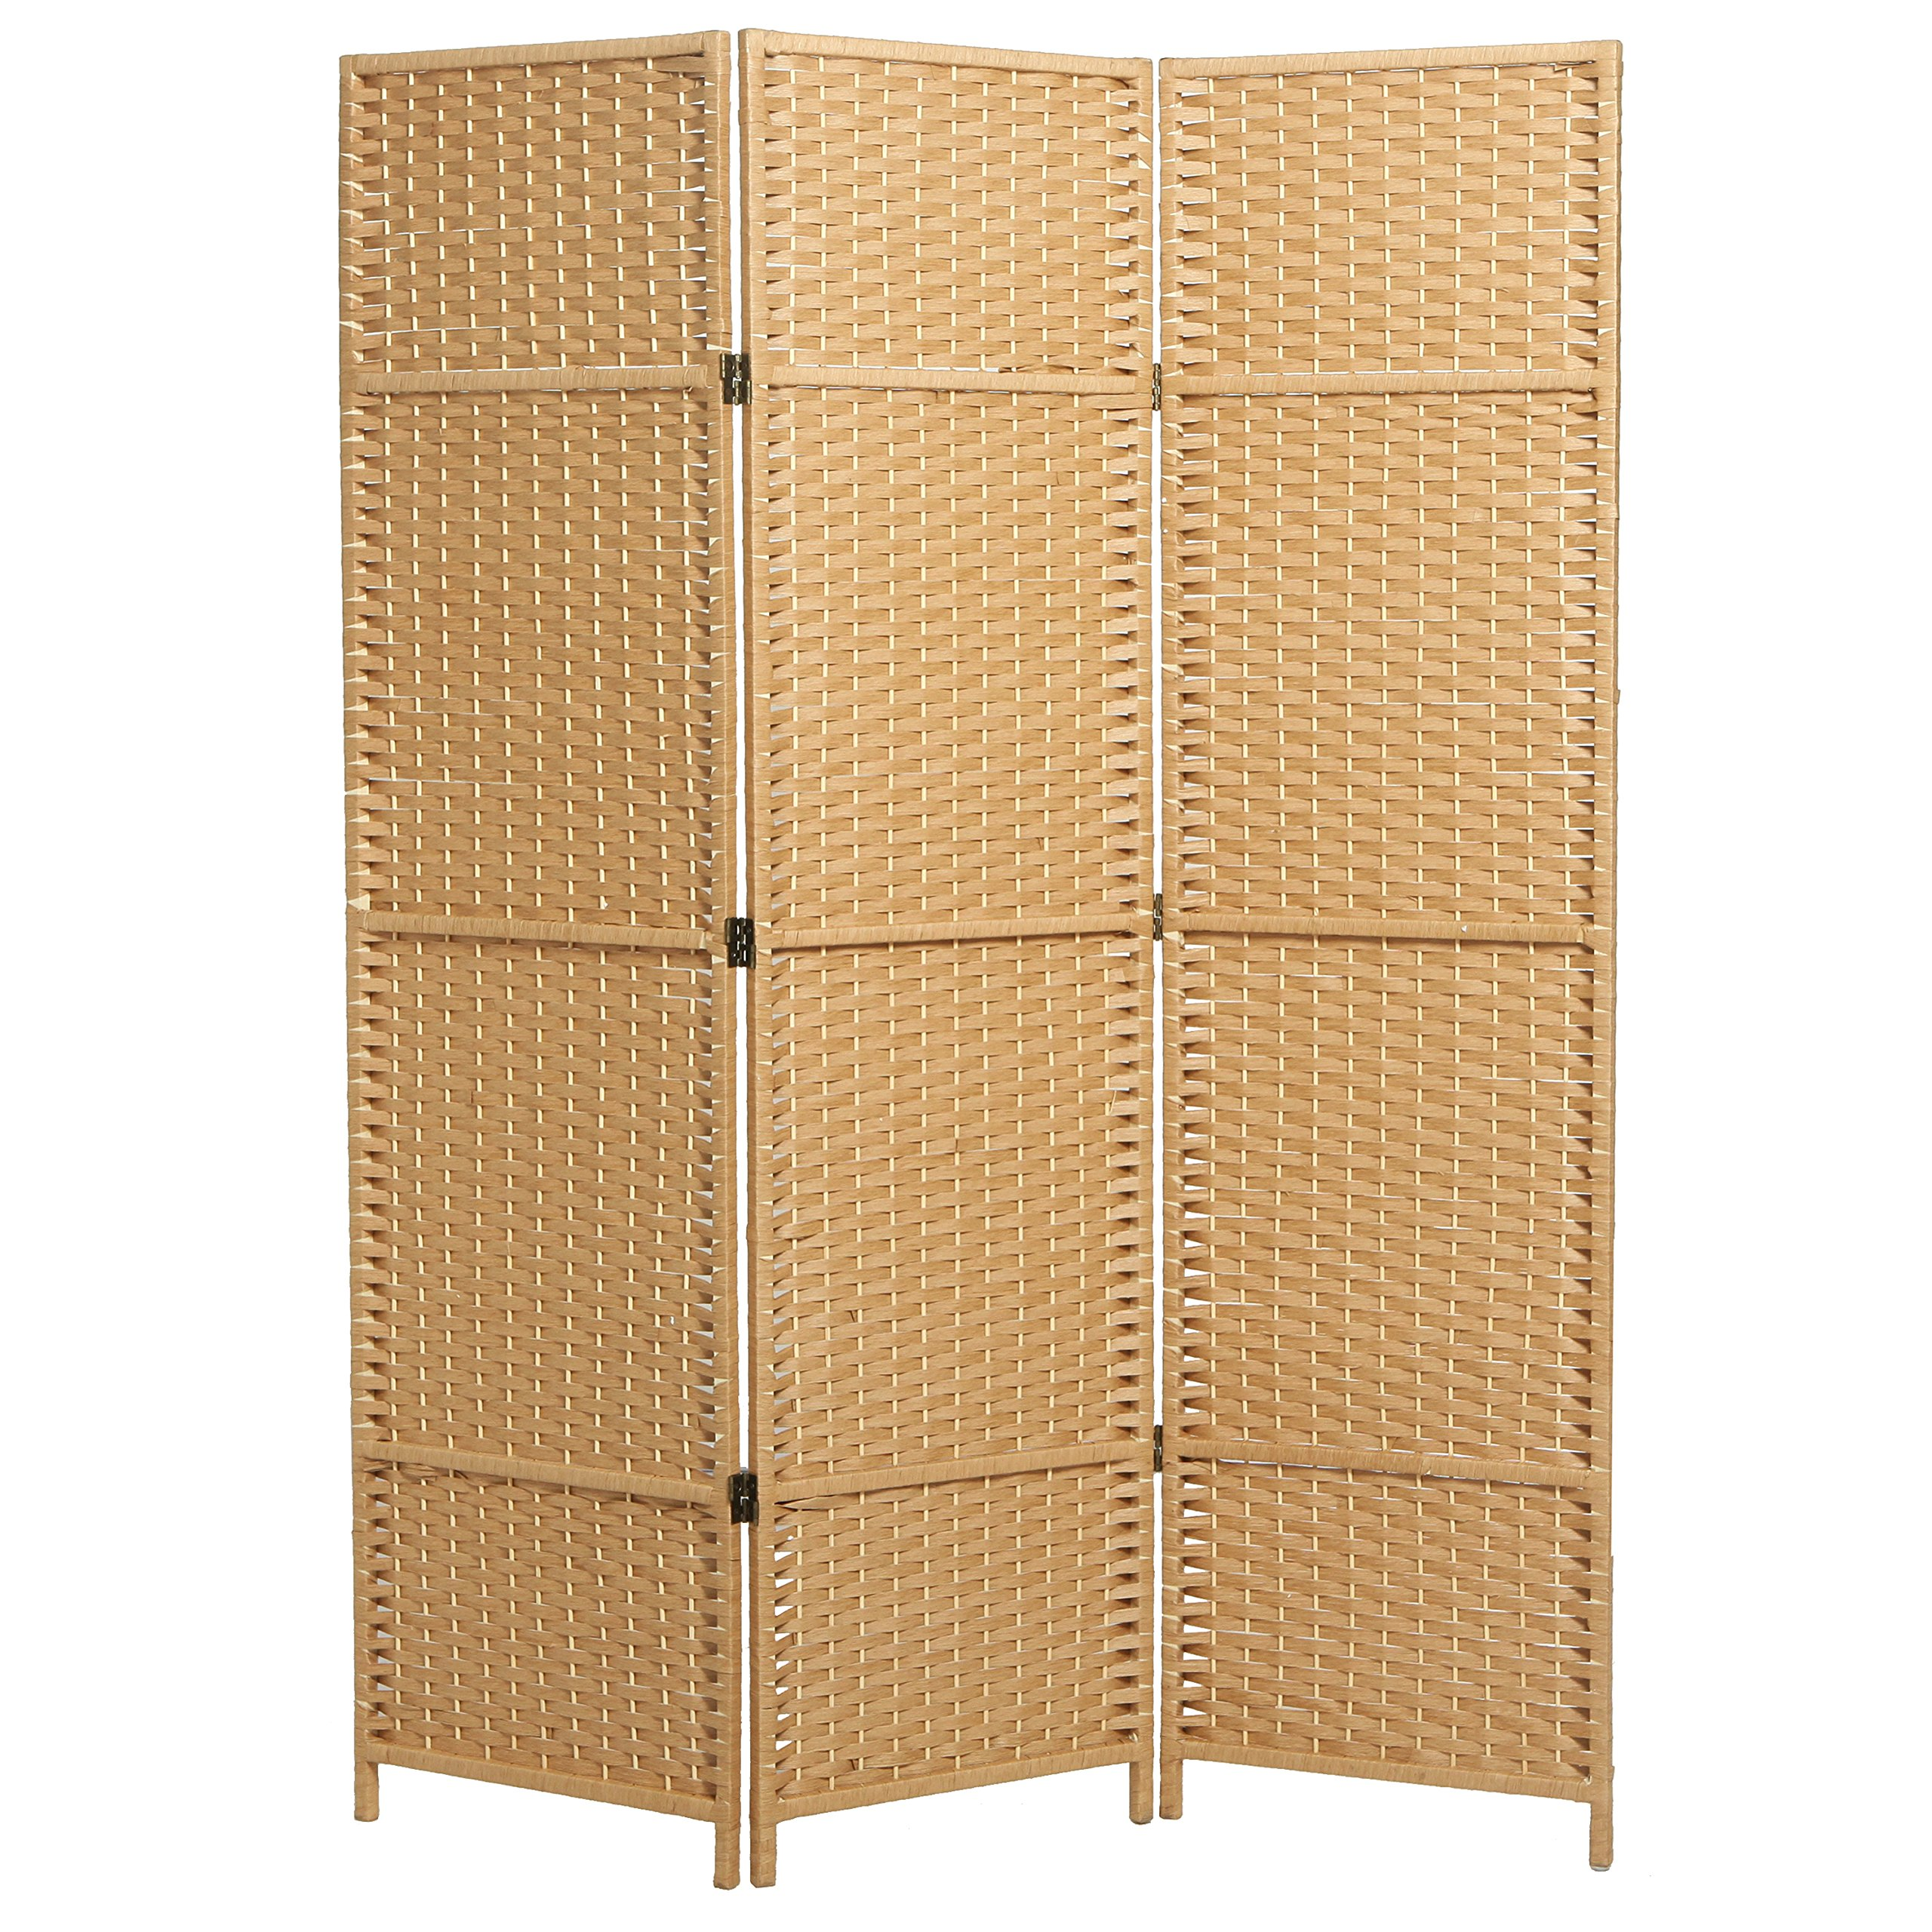 Cheap Rattan Room Divider Screen find Rattan Room Divider Screen